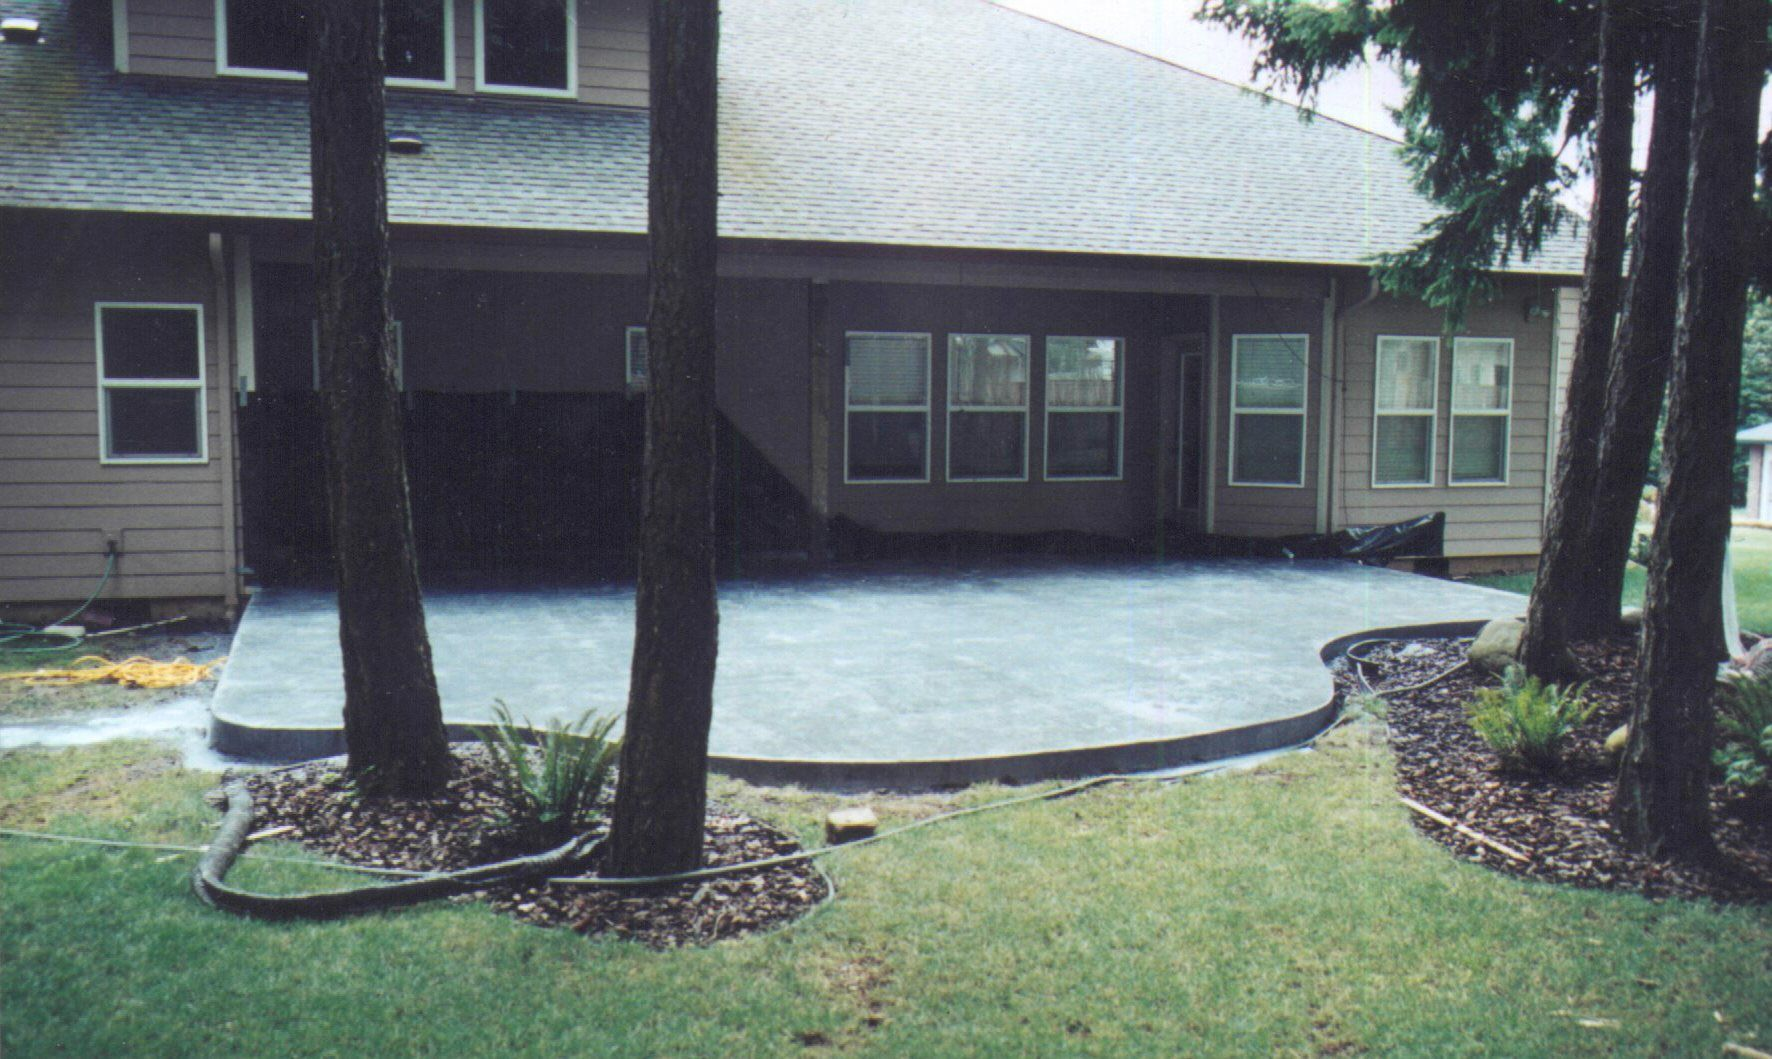 concretepatiodesigns concrete patio ideas custom patios staining concrete patio patio